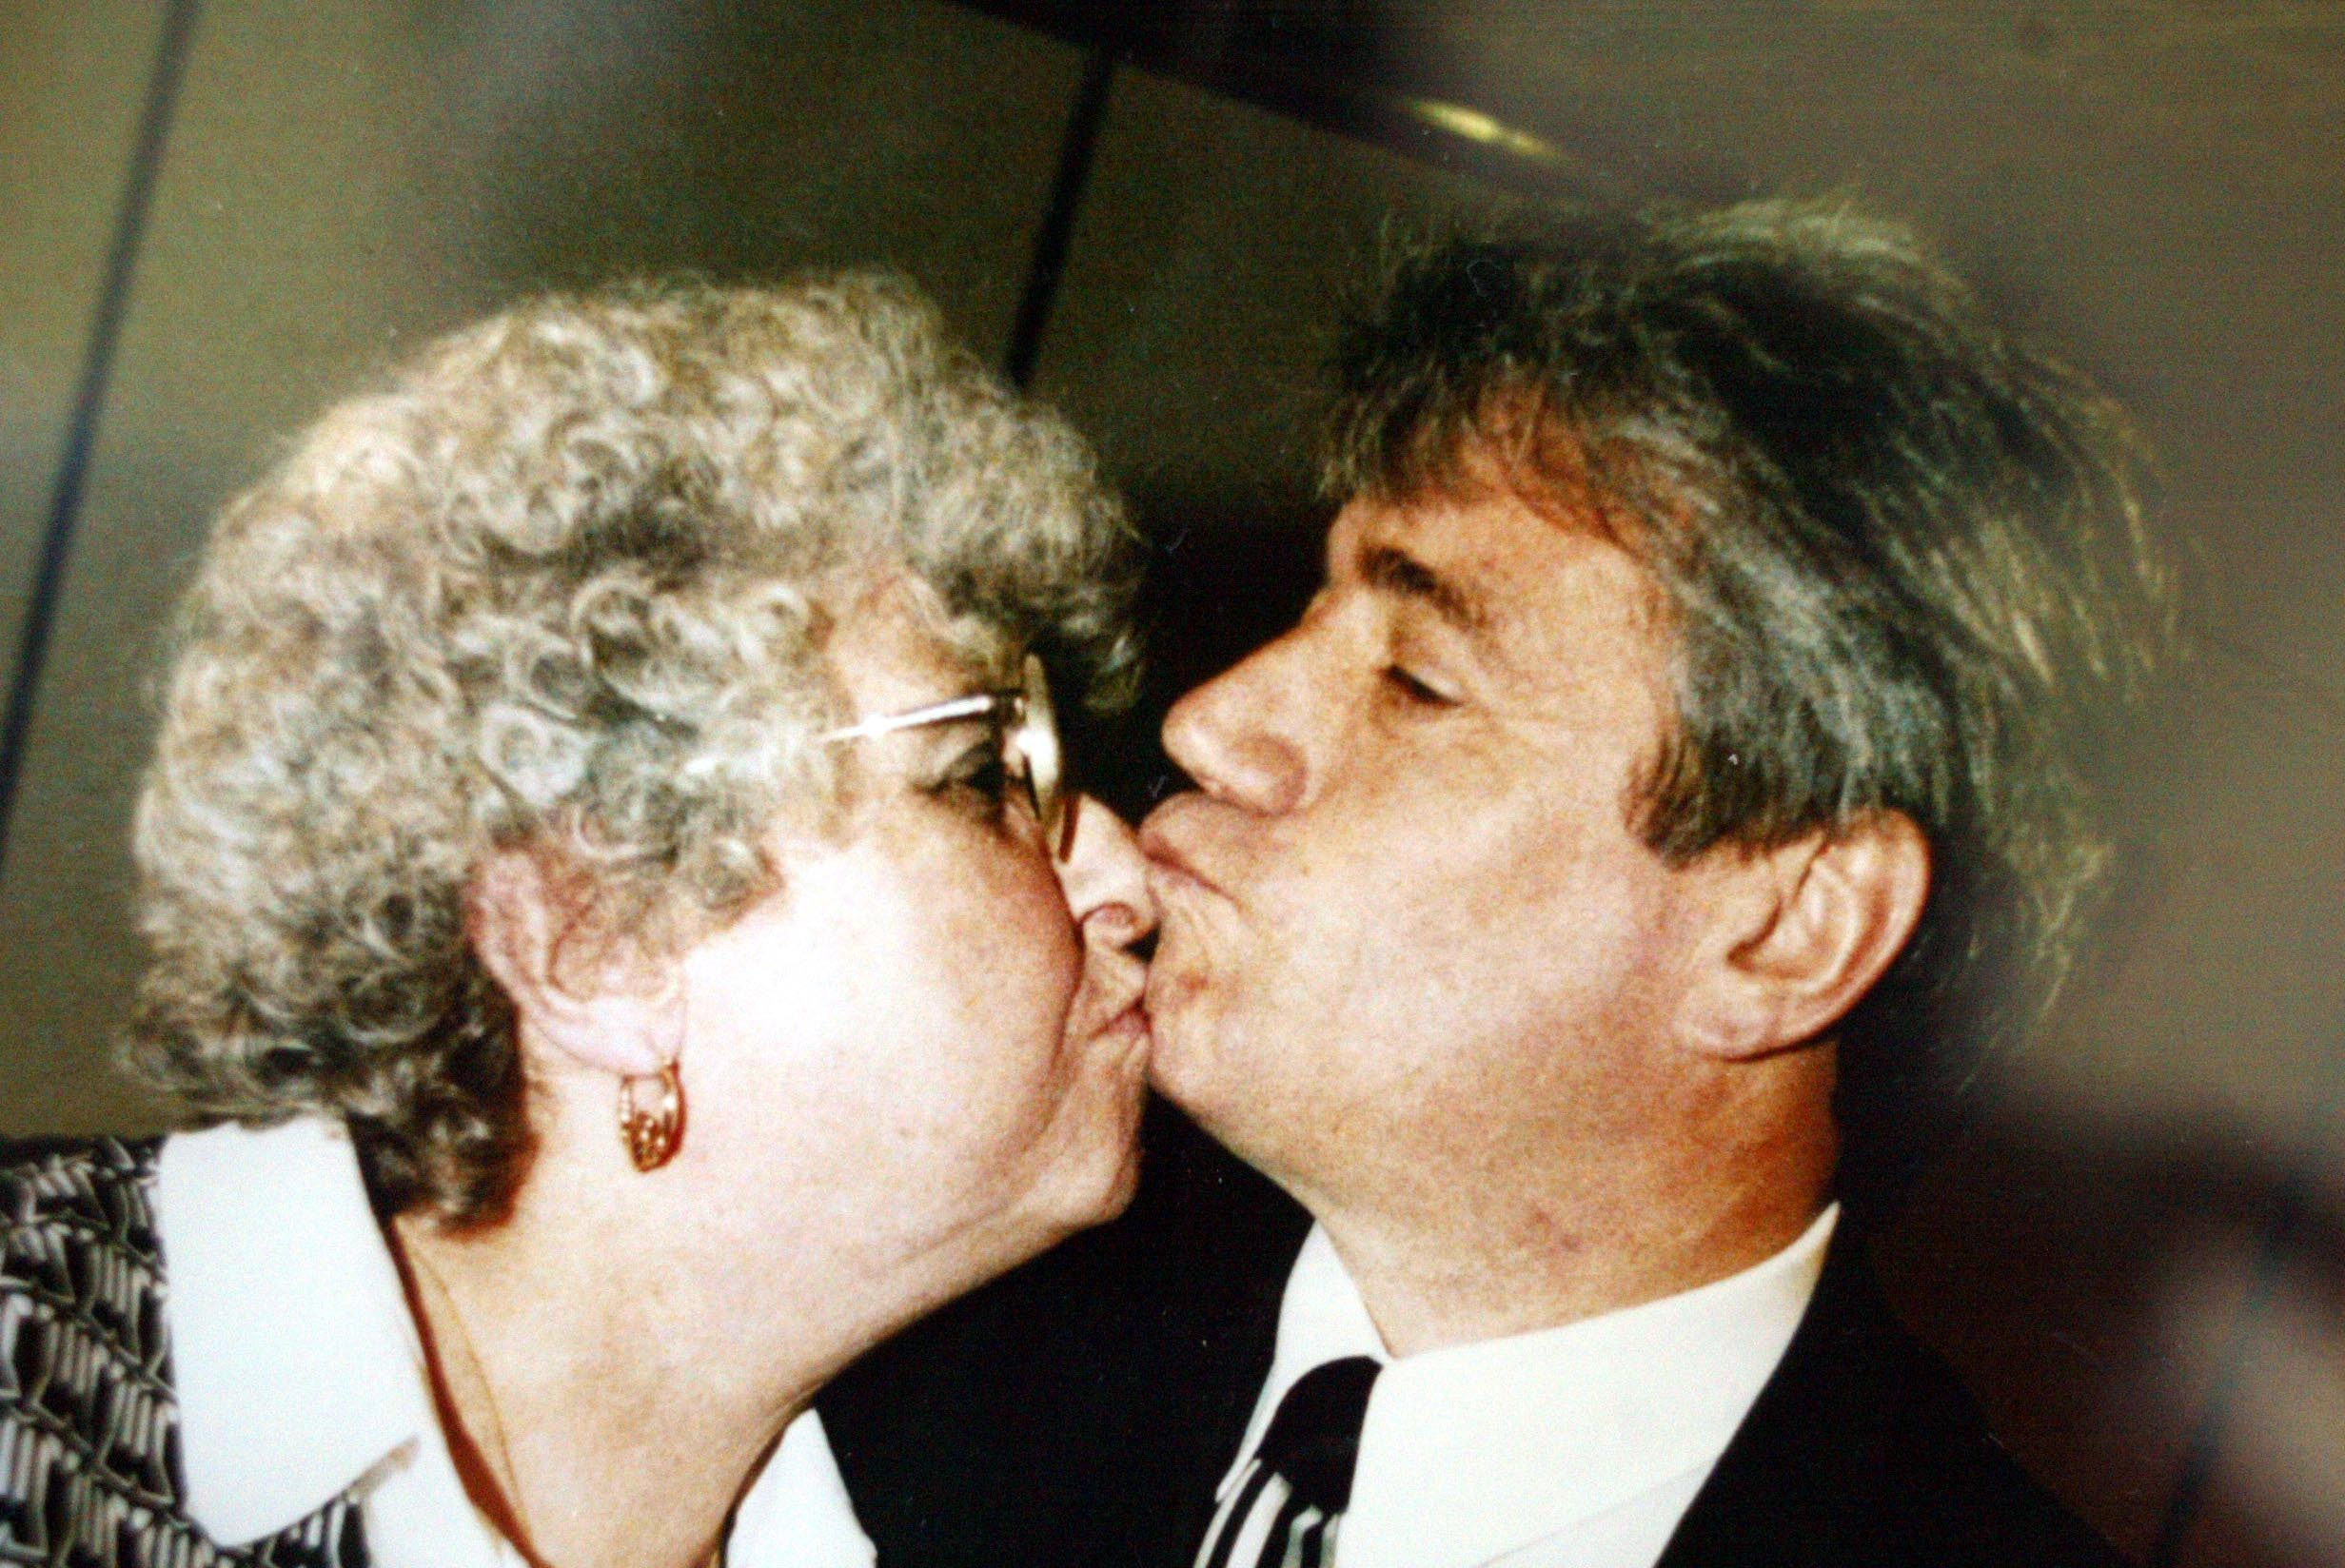 Kath-cassidy-and-kevin-keegan